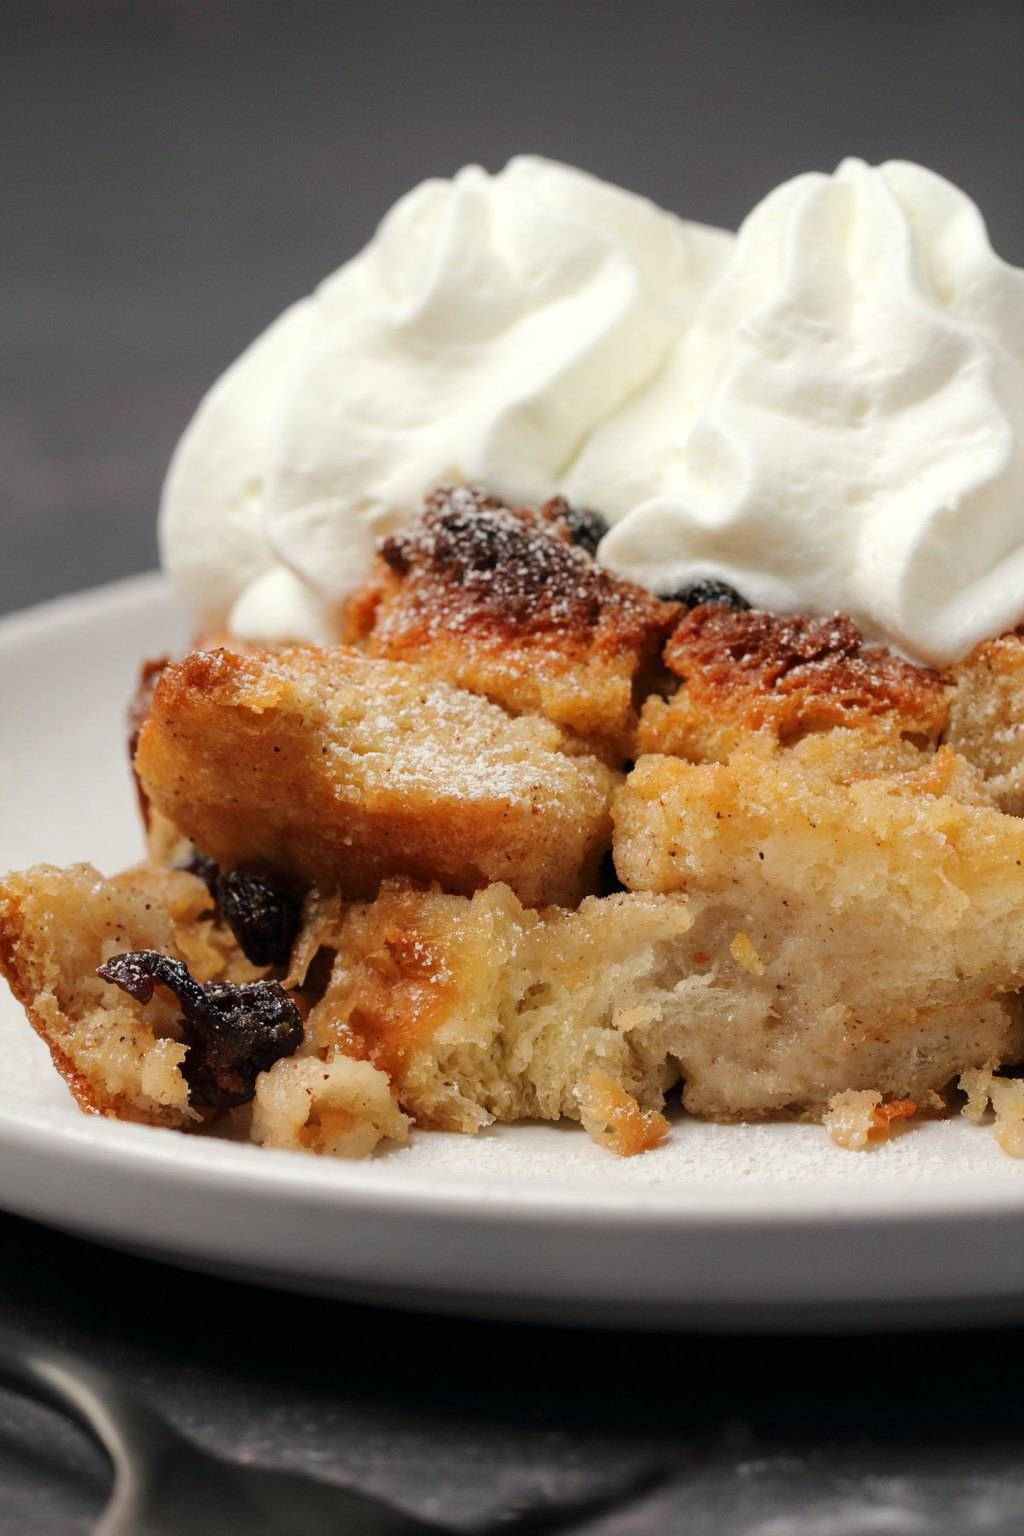 Vegan bread pudding topped with vegan cream on a white plate.